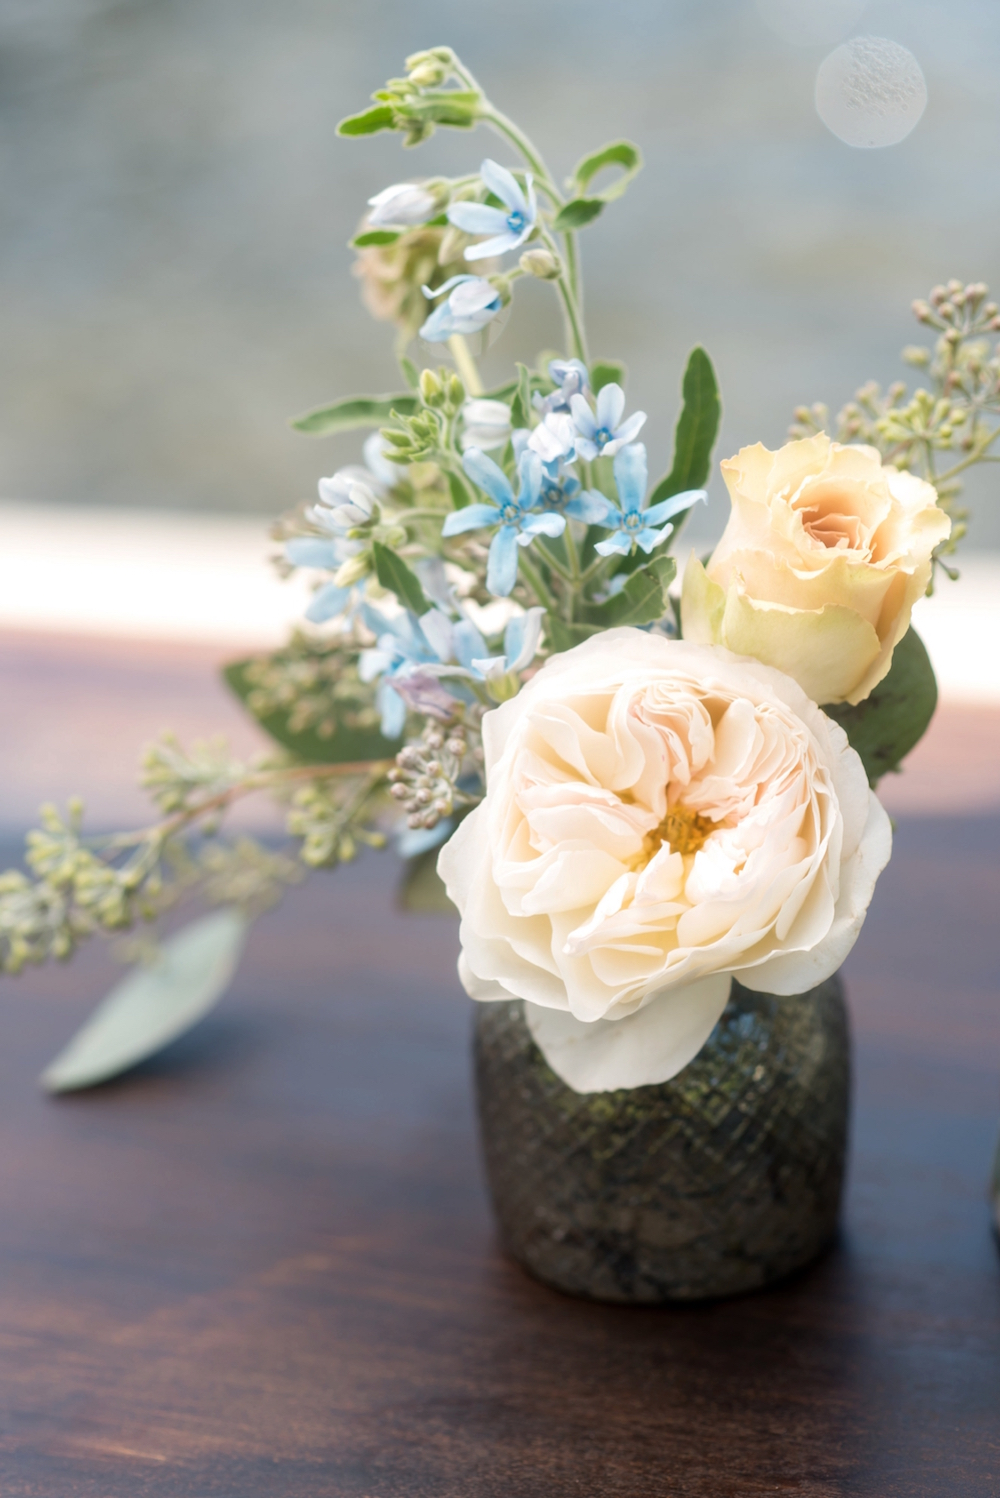 Coastal Chic Wedding Inspiration / photo by Caroline & Evan Photography / flowers by FH Weddings & Events